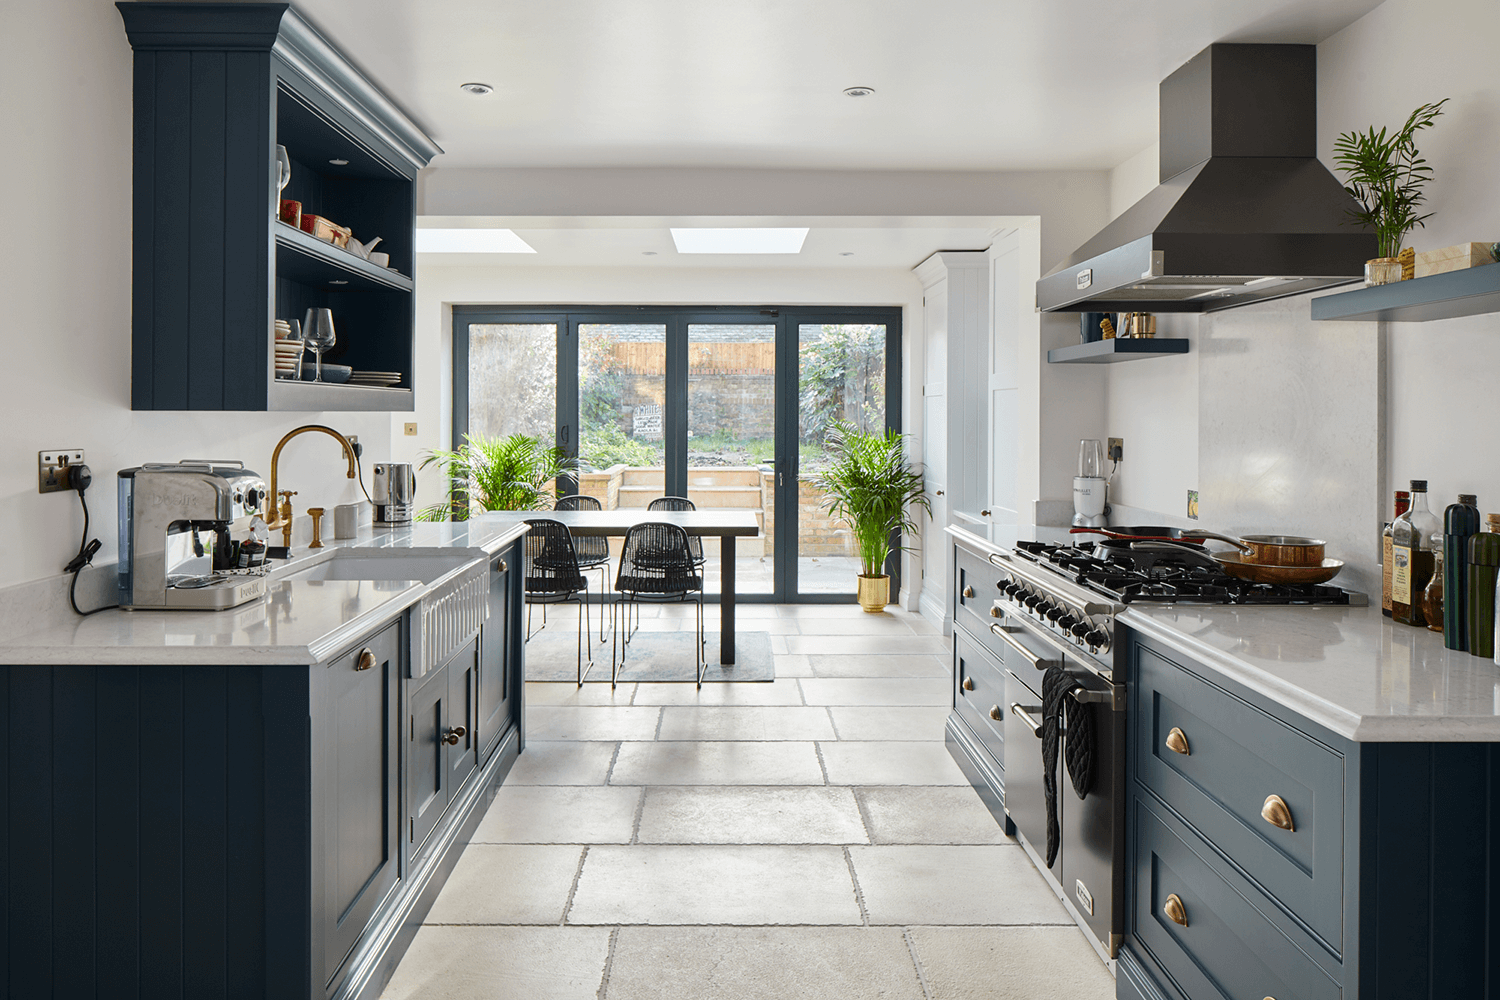 How to Plan a Kitchen Extension Project